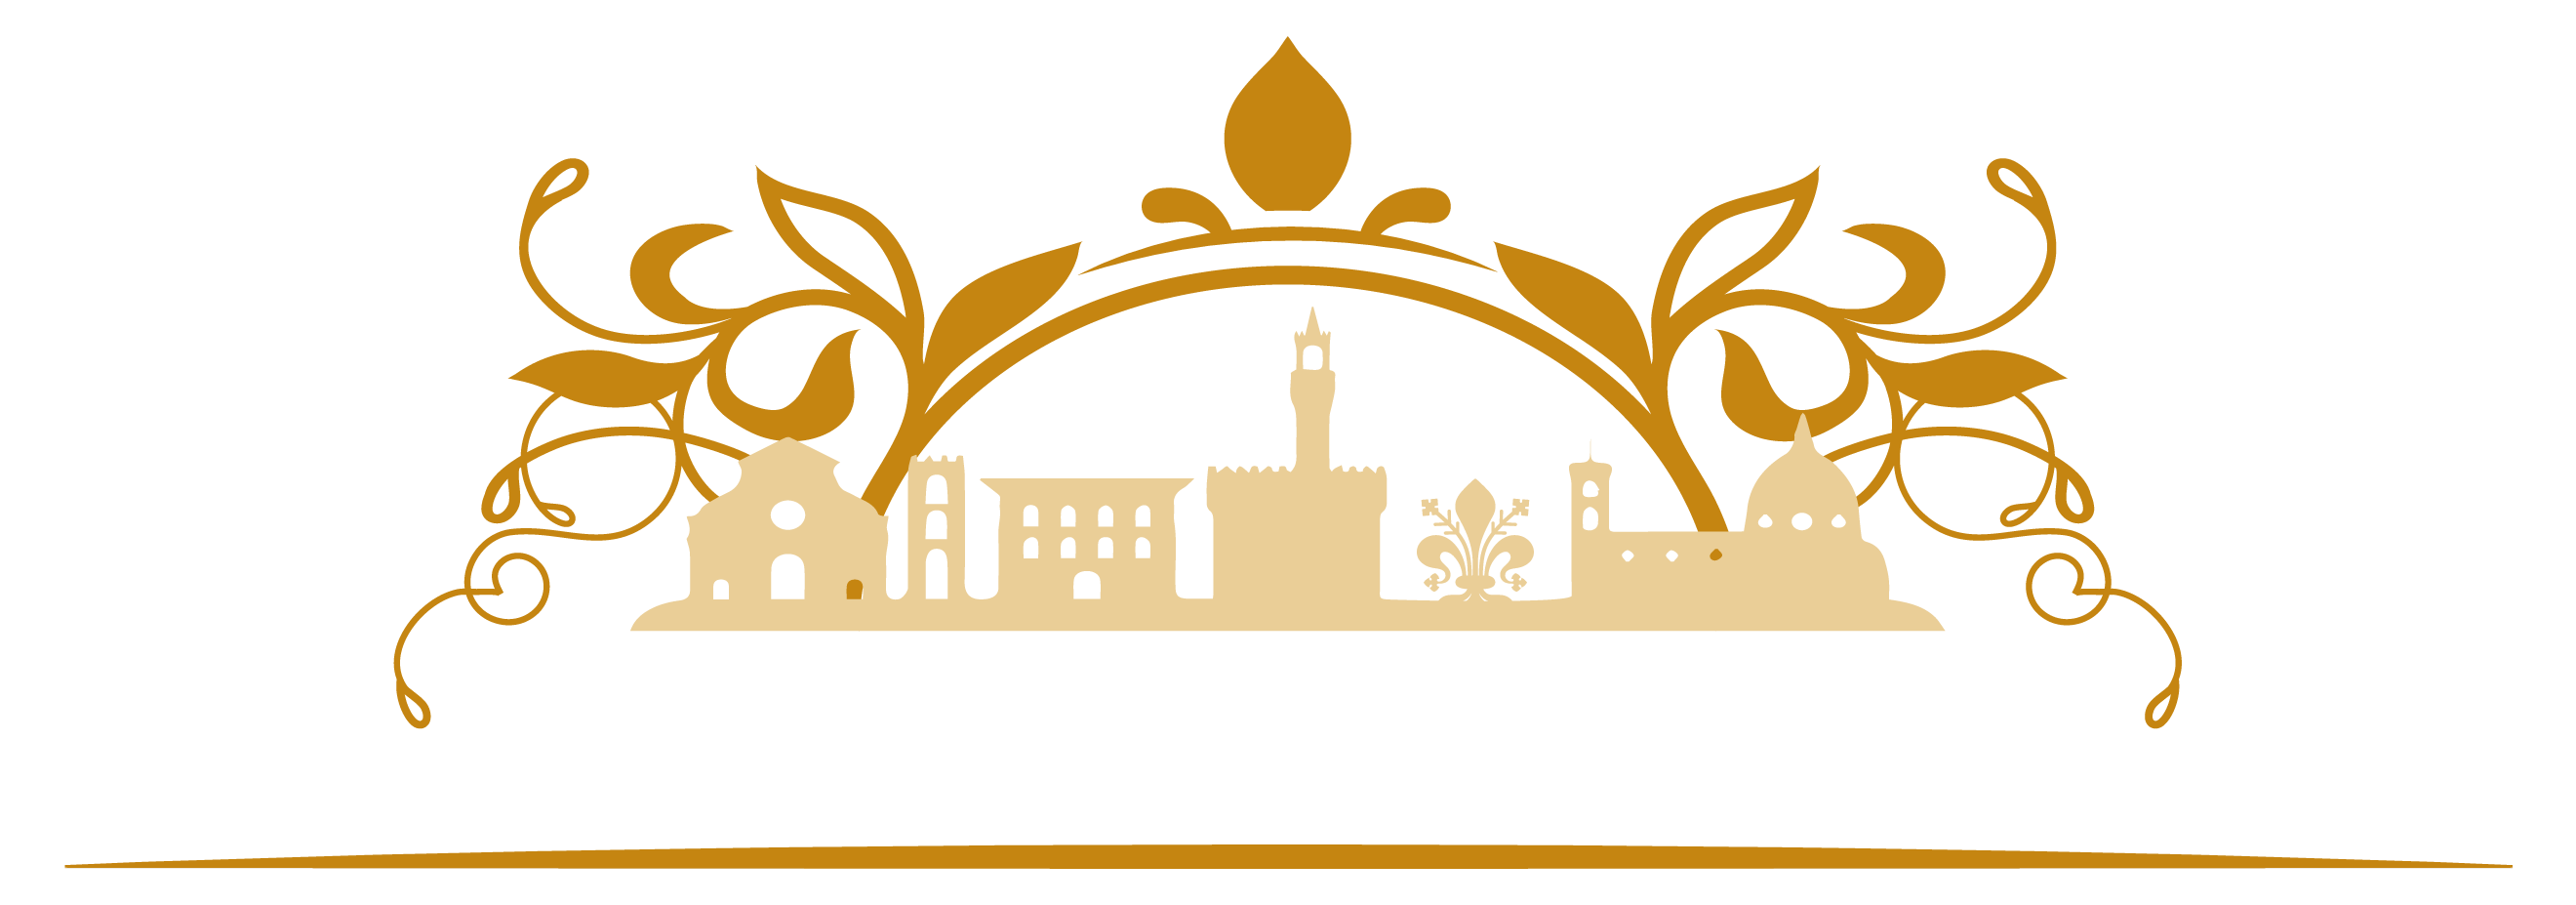 Capodanno a Firenze 2021- New Year's eve 2021 in Florence